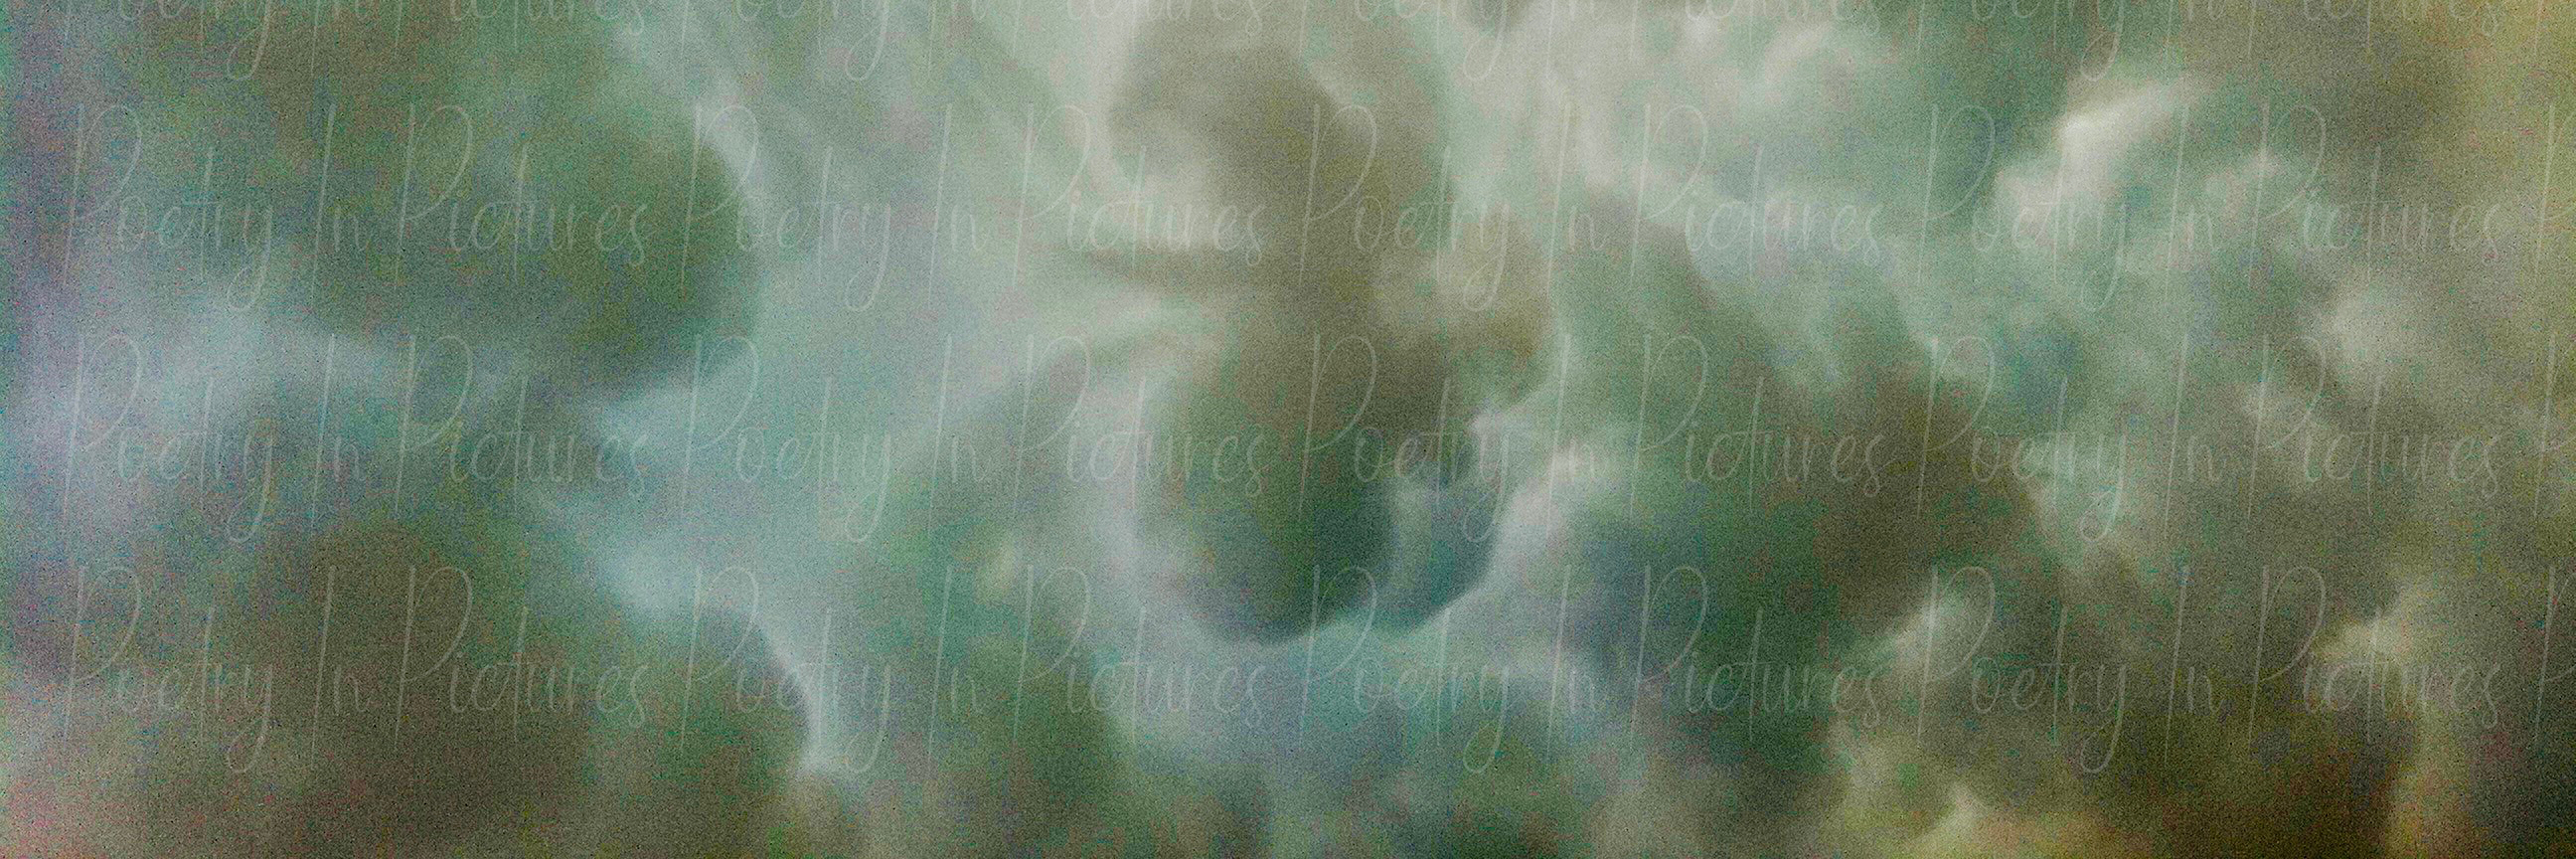 The Heavens in Peach and Green artwork by Tracy Brown - art listed for sale on Artplode